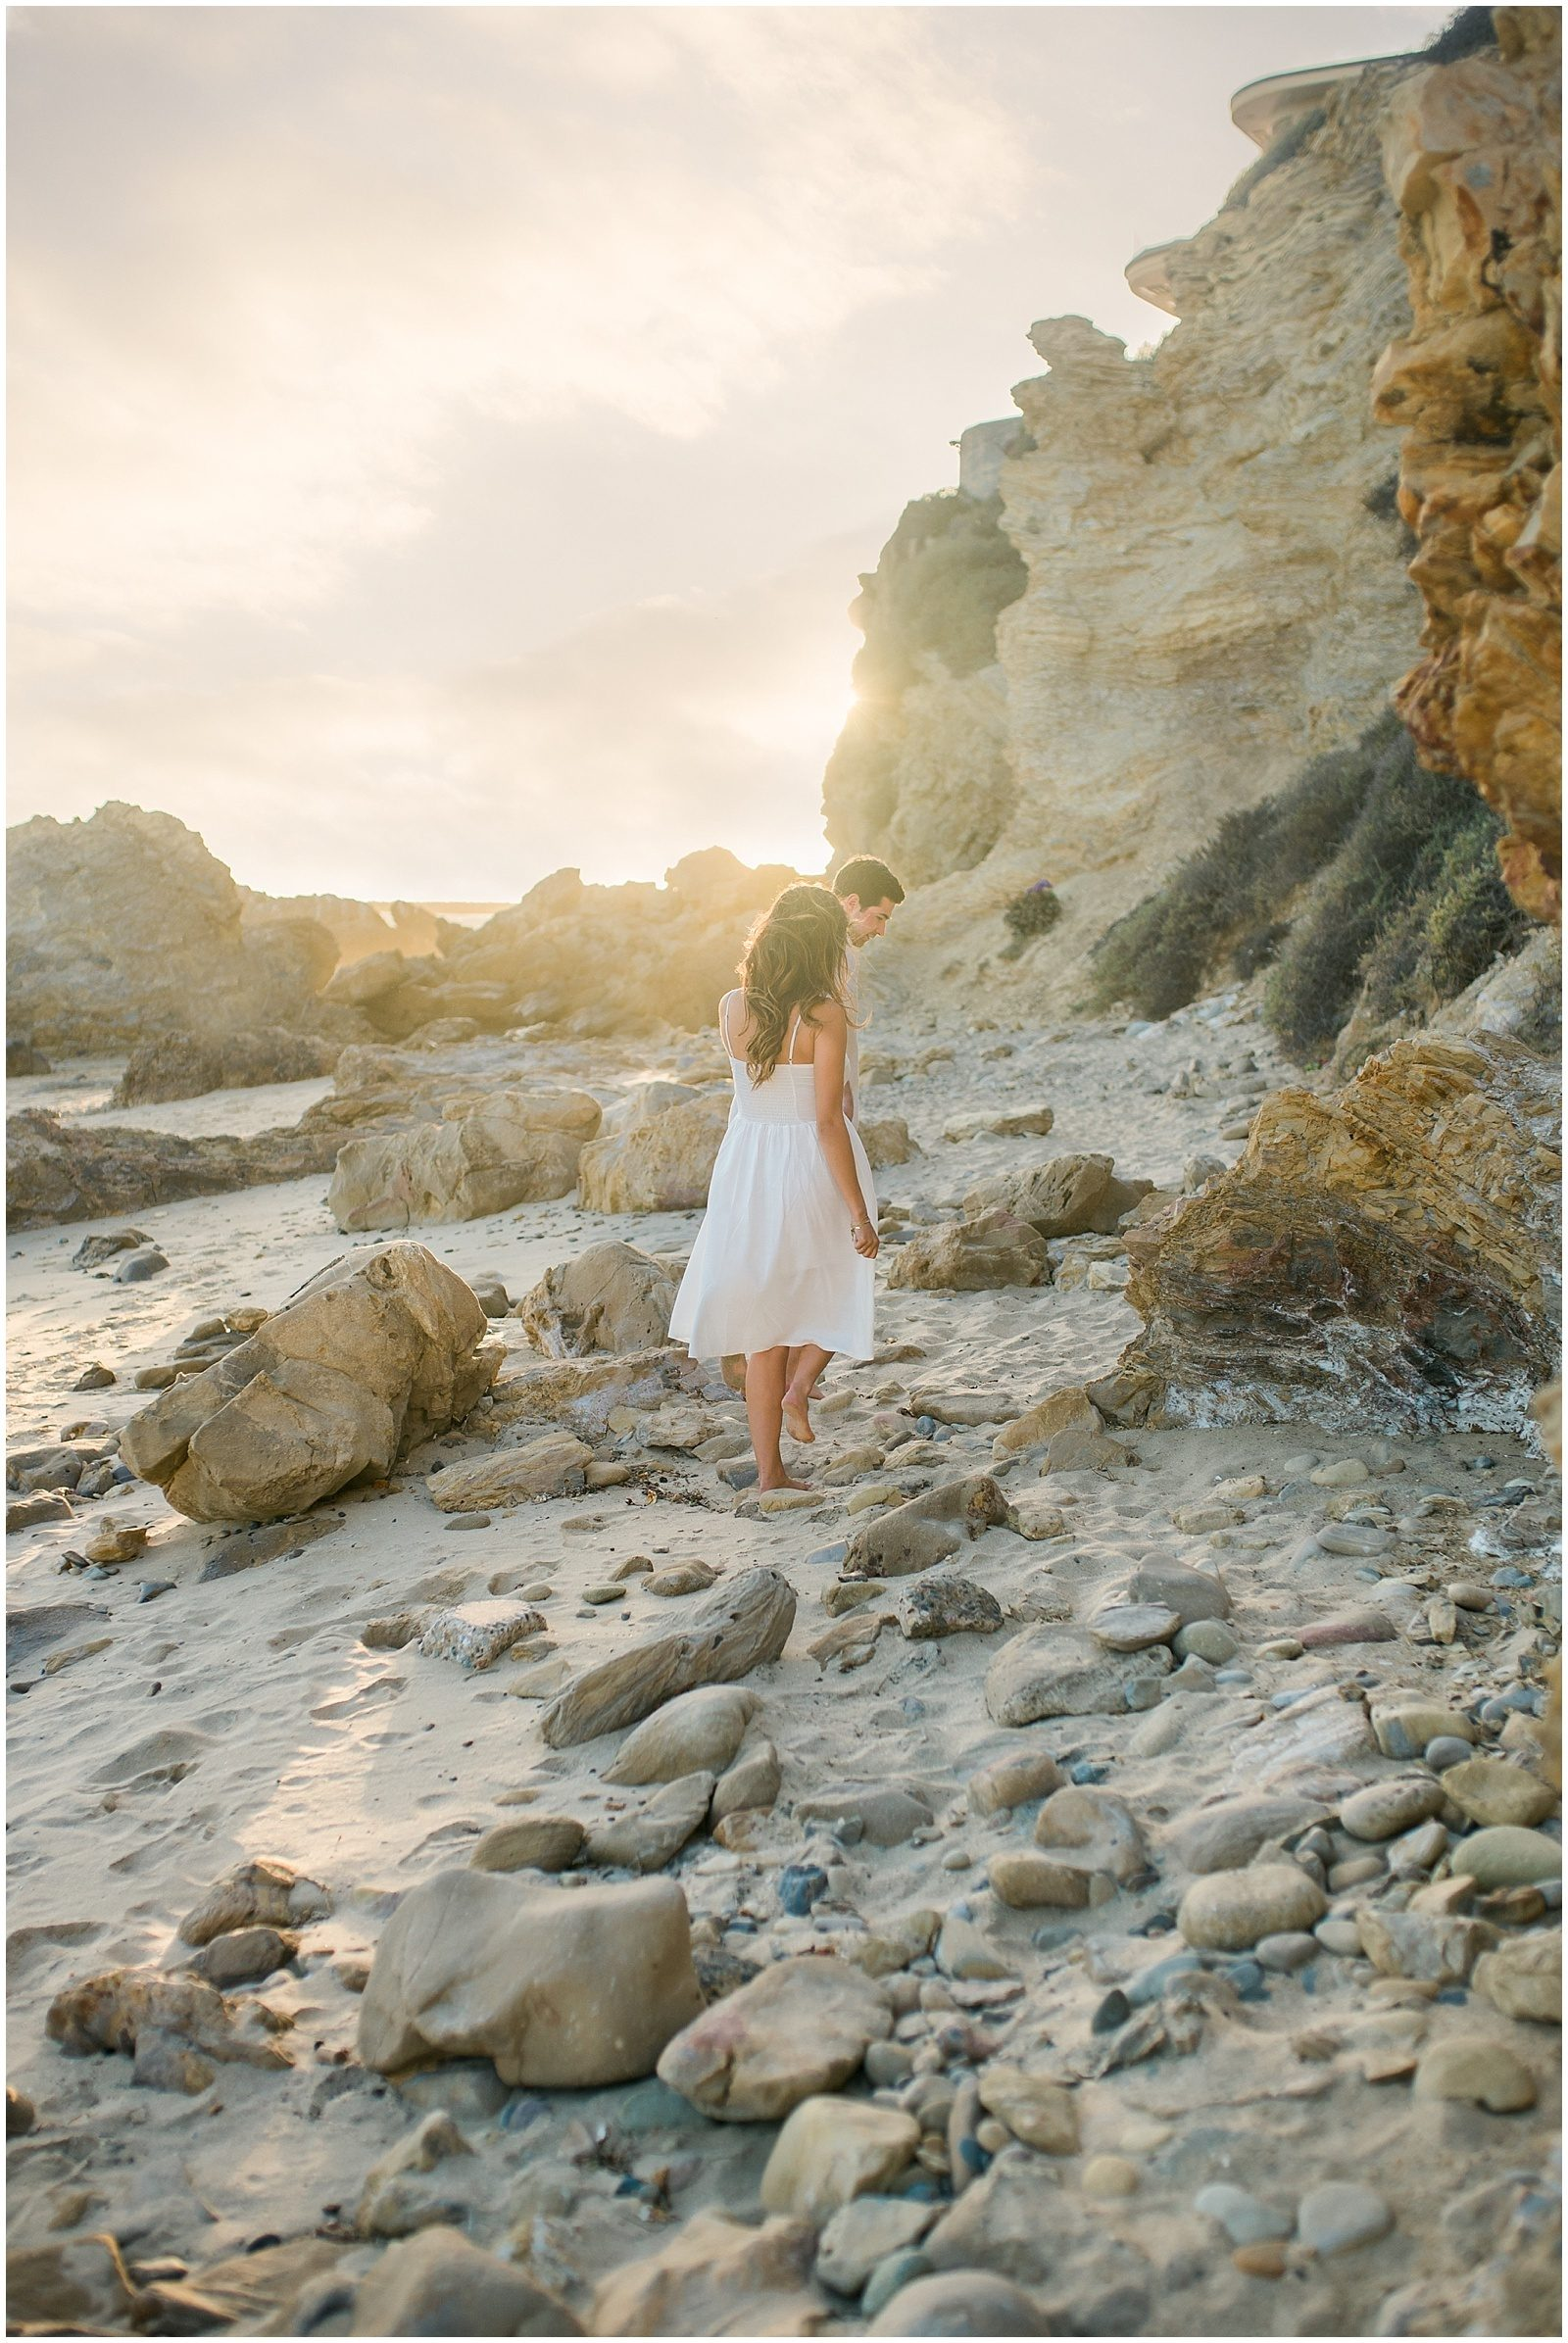 Magical Skies | Orange County Maternity Photographer